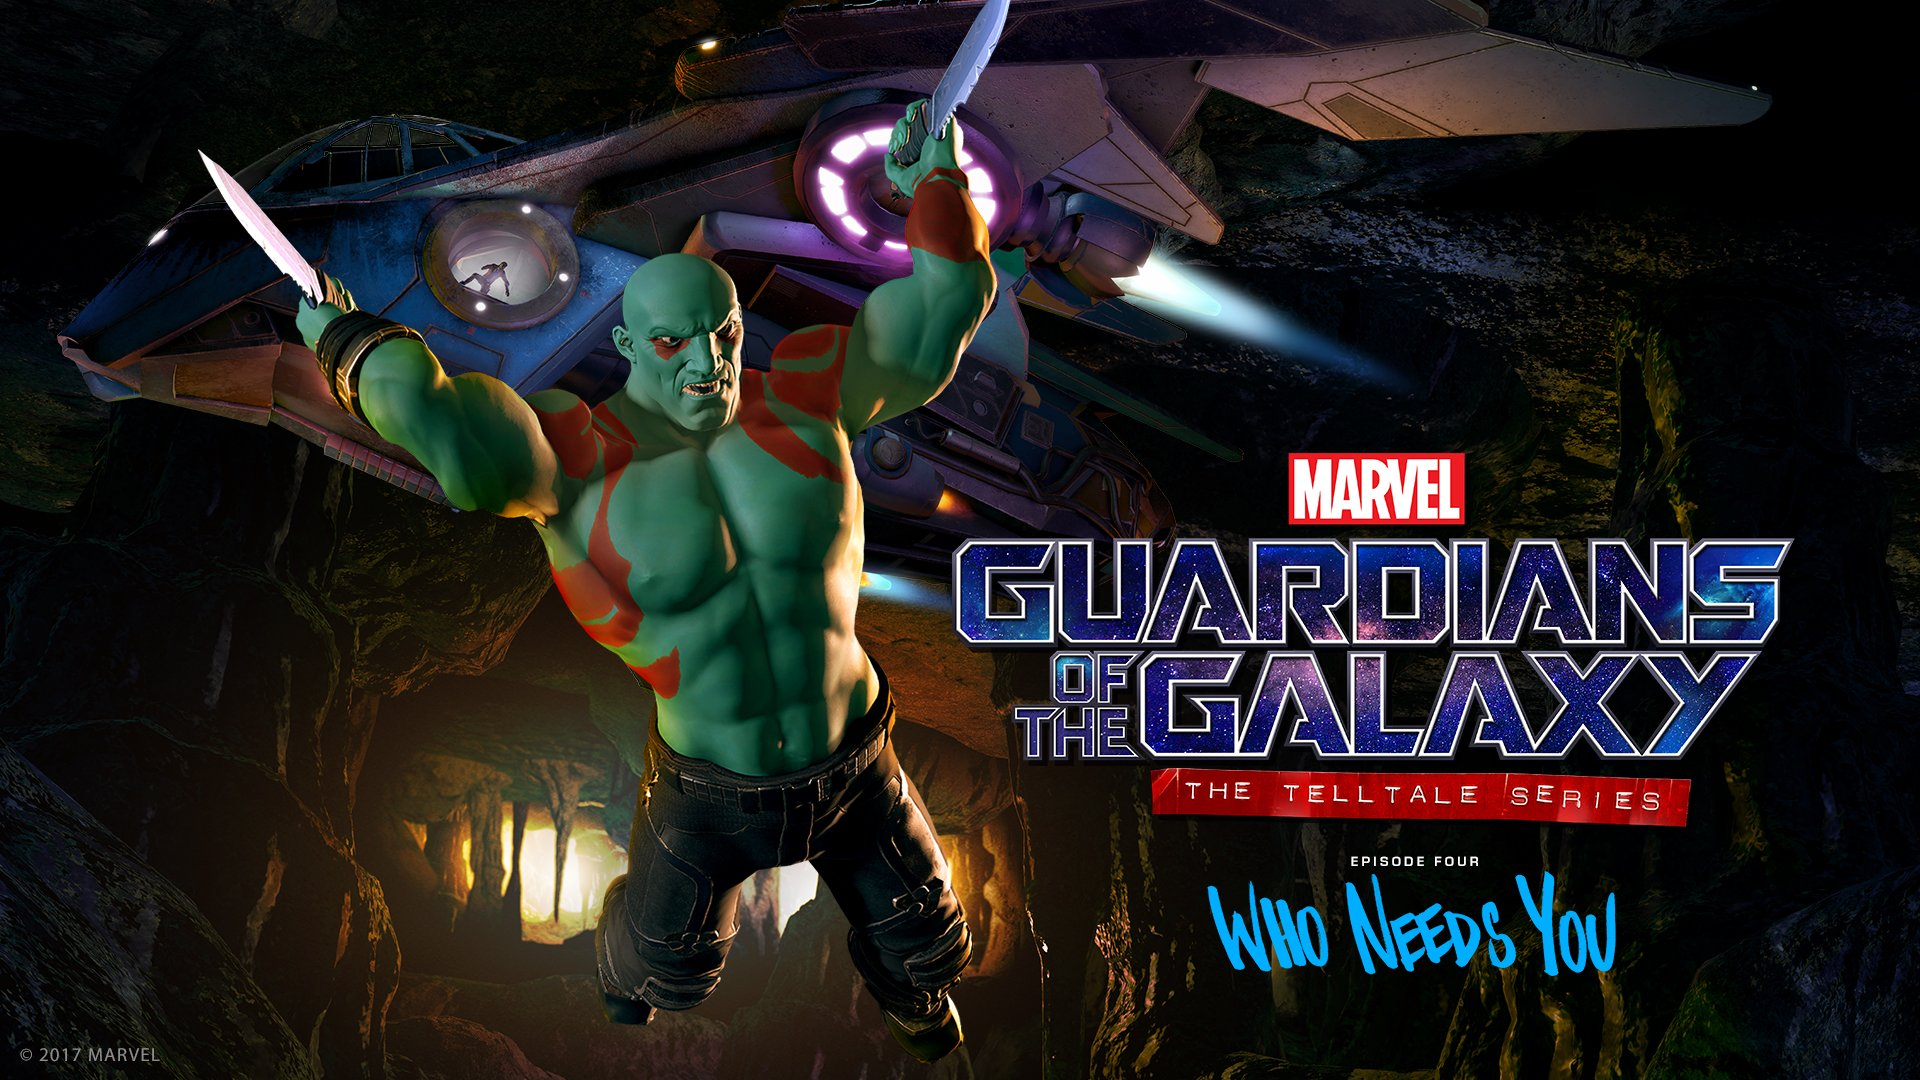 Marvel's Guardians of the Galaxy - Episode Four: Who Needs You Review